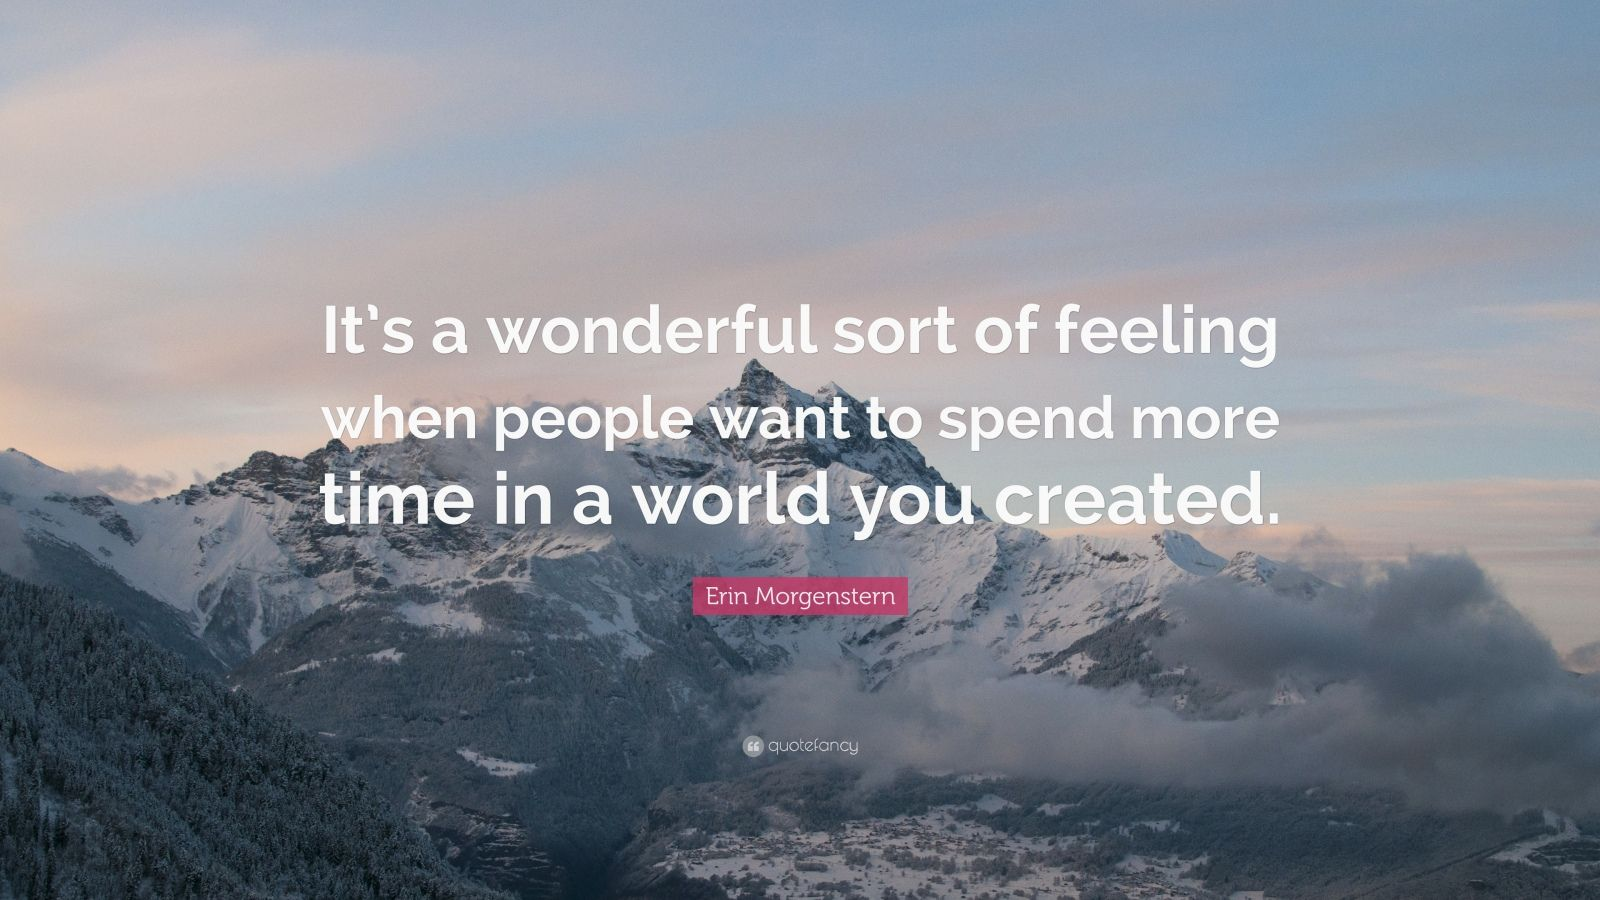 """Erin Morgenstern Quote: """"It's a wonderful sort of feeling when people want to spend more time in a world you created."""""""